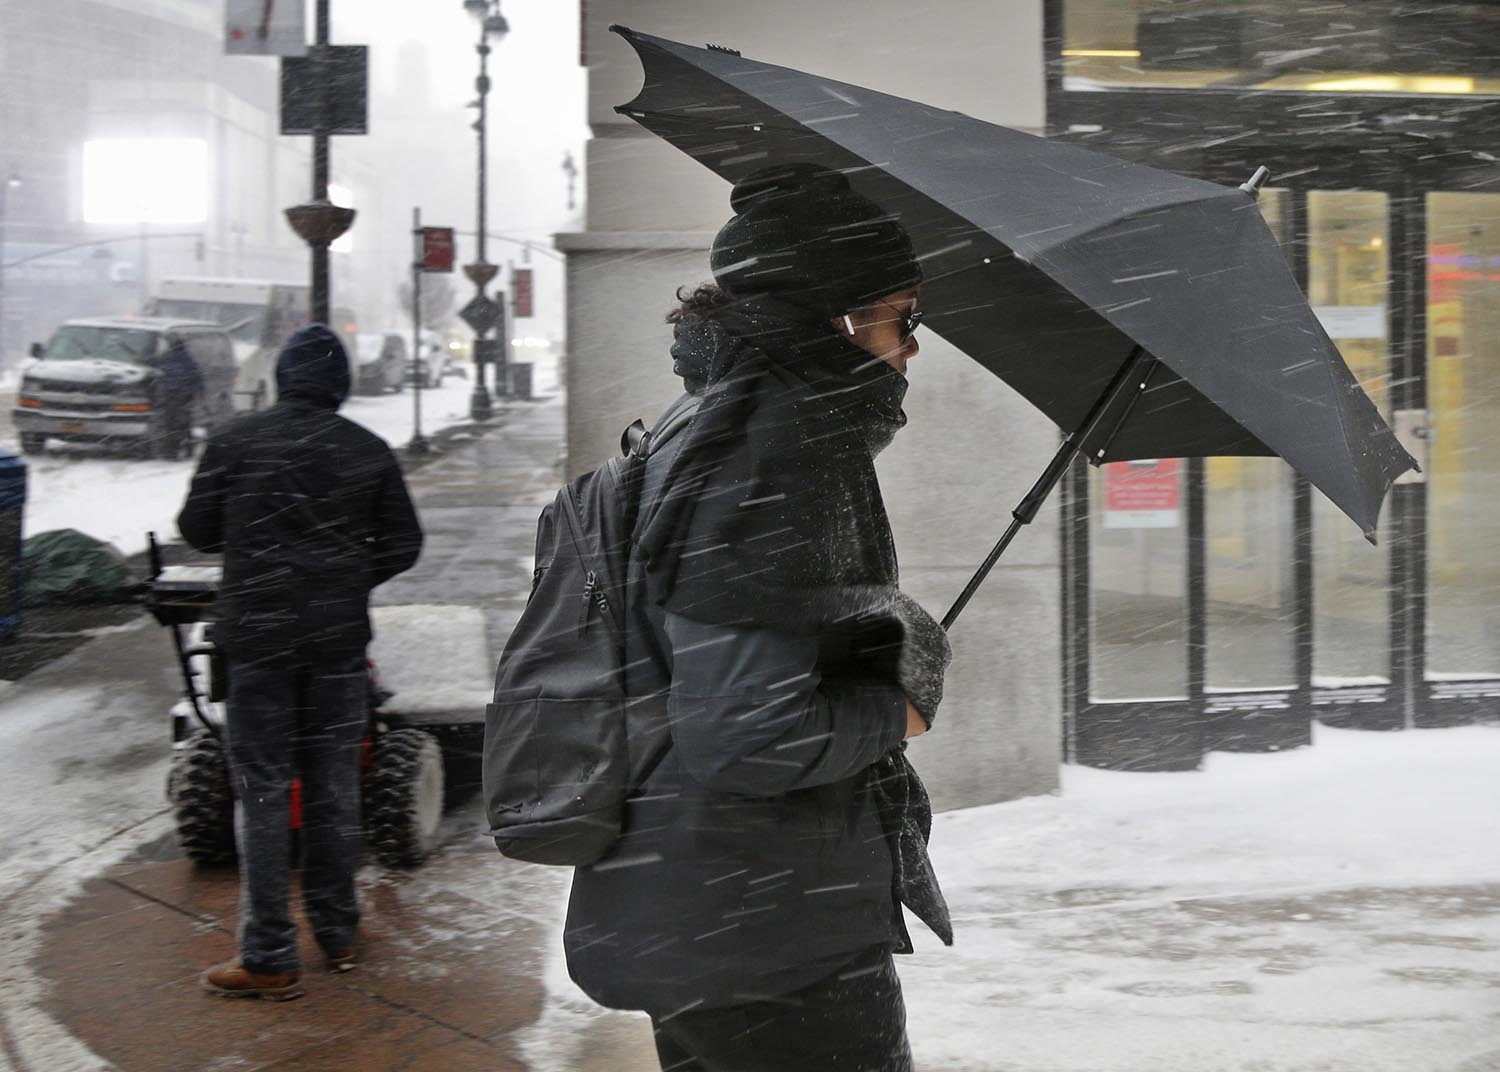 <div class='meta'><div class='origin-logo' data-origin='AP'></div><span class='caption-text' data-credit='AP Photo/Seth Wenig'>A pedestrian uses an umbrella as a shield from the windblown snow in New York, Thursday, Jan. 4, 2018.</span></div>